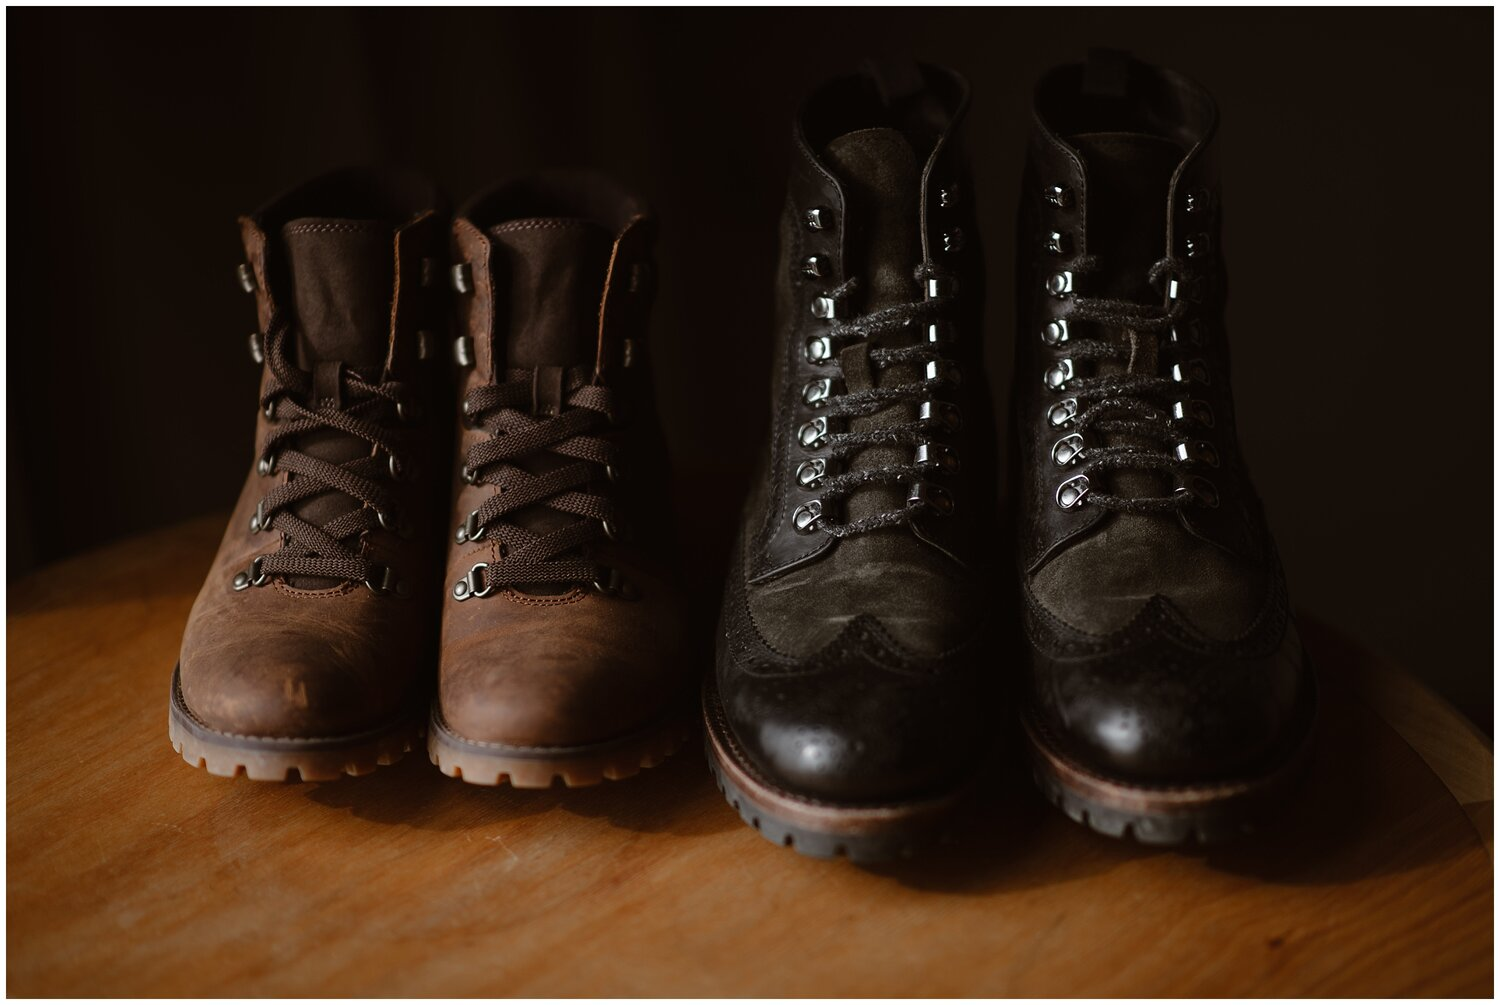 Two pairs of boots.